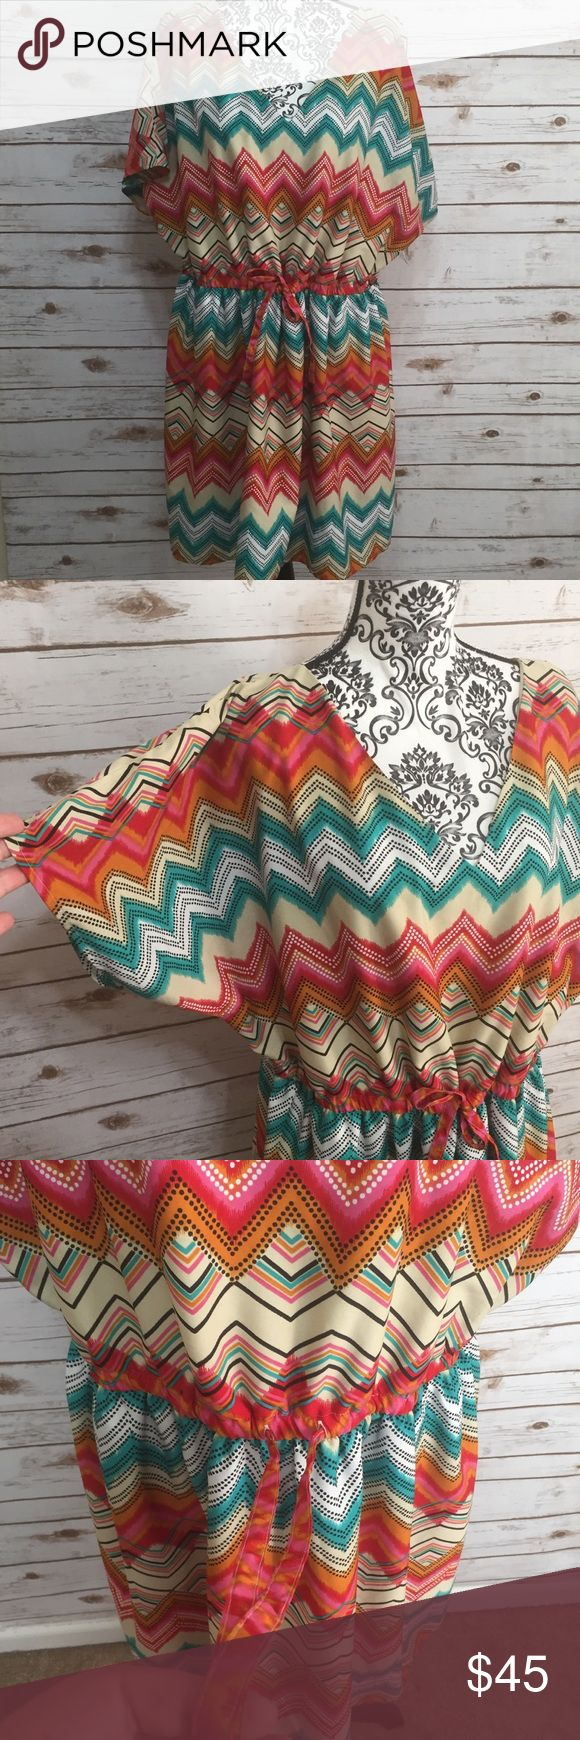 Lane Bryant multi colored chevron Dress Size 22/24 multi colored v neck chevron print dress from Lane Bryant. Dress is fully lined. Elastic drawstring waist. Offers are welcome but I don't trade. Lane Bryant Dresses Mini